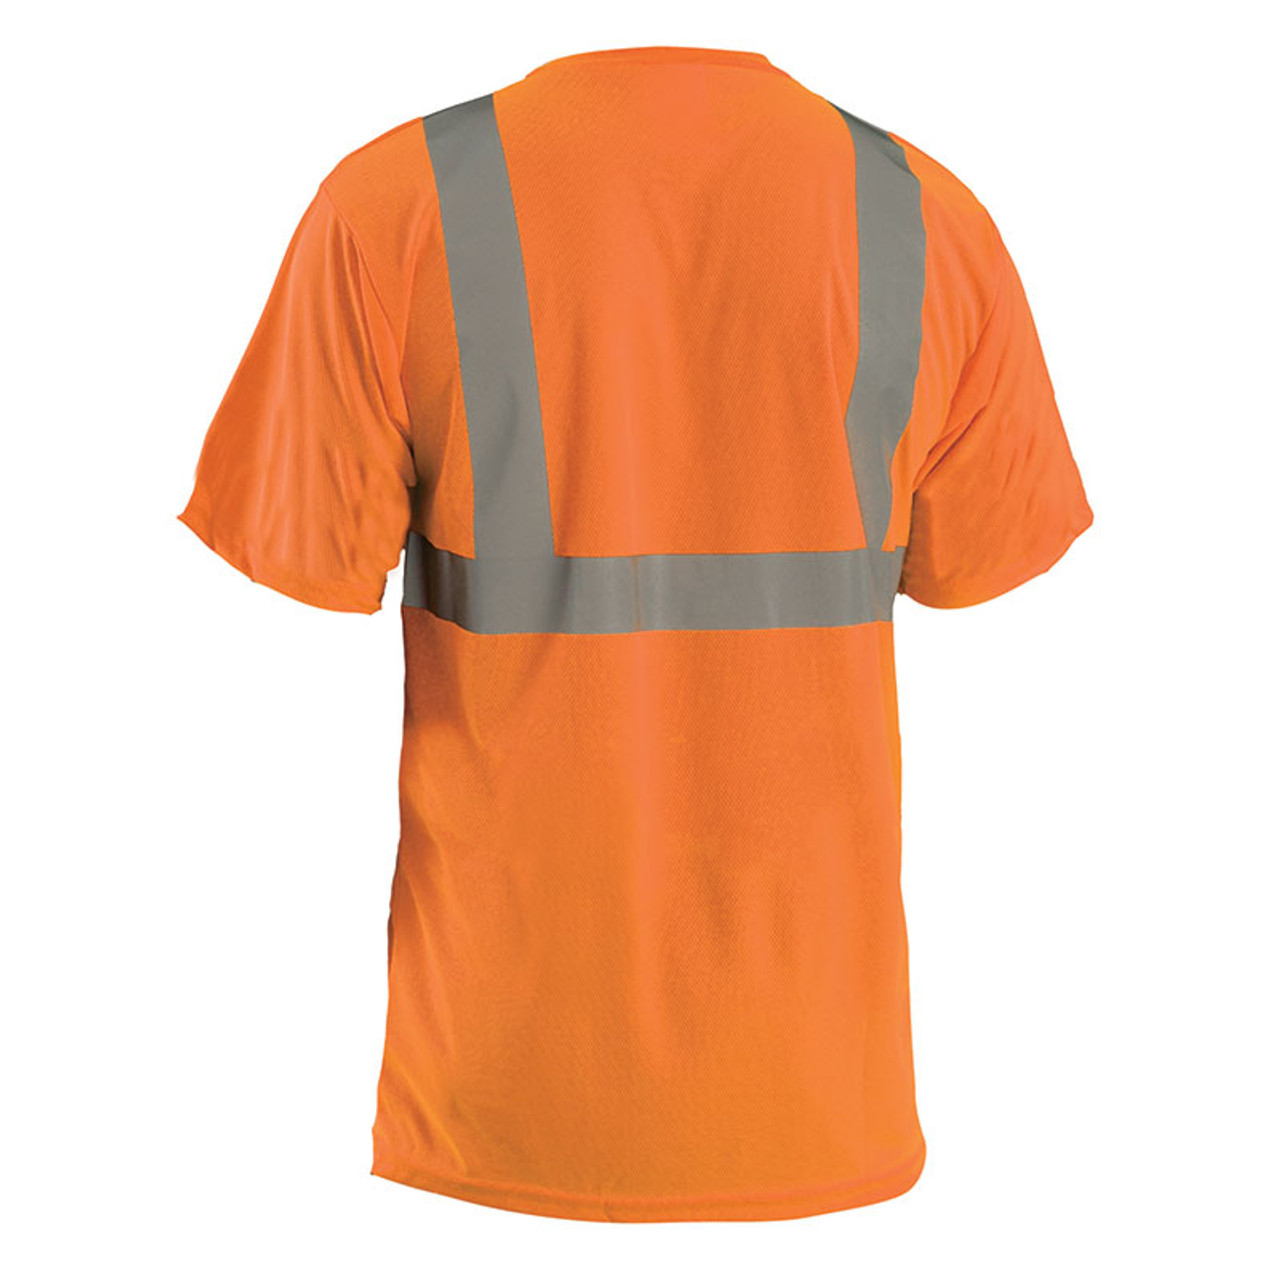 High Visibility 100/% ANSI Wicking Polyester Birdseye OccuNomix LUX-SSETP2B-YL Classic Standard Short Sleeve Wicking Birdseye T-Shirt with Pocket Large Yellow Class 2